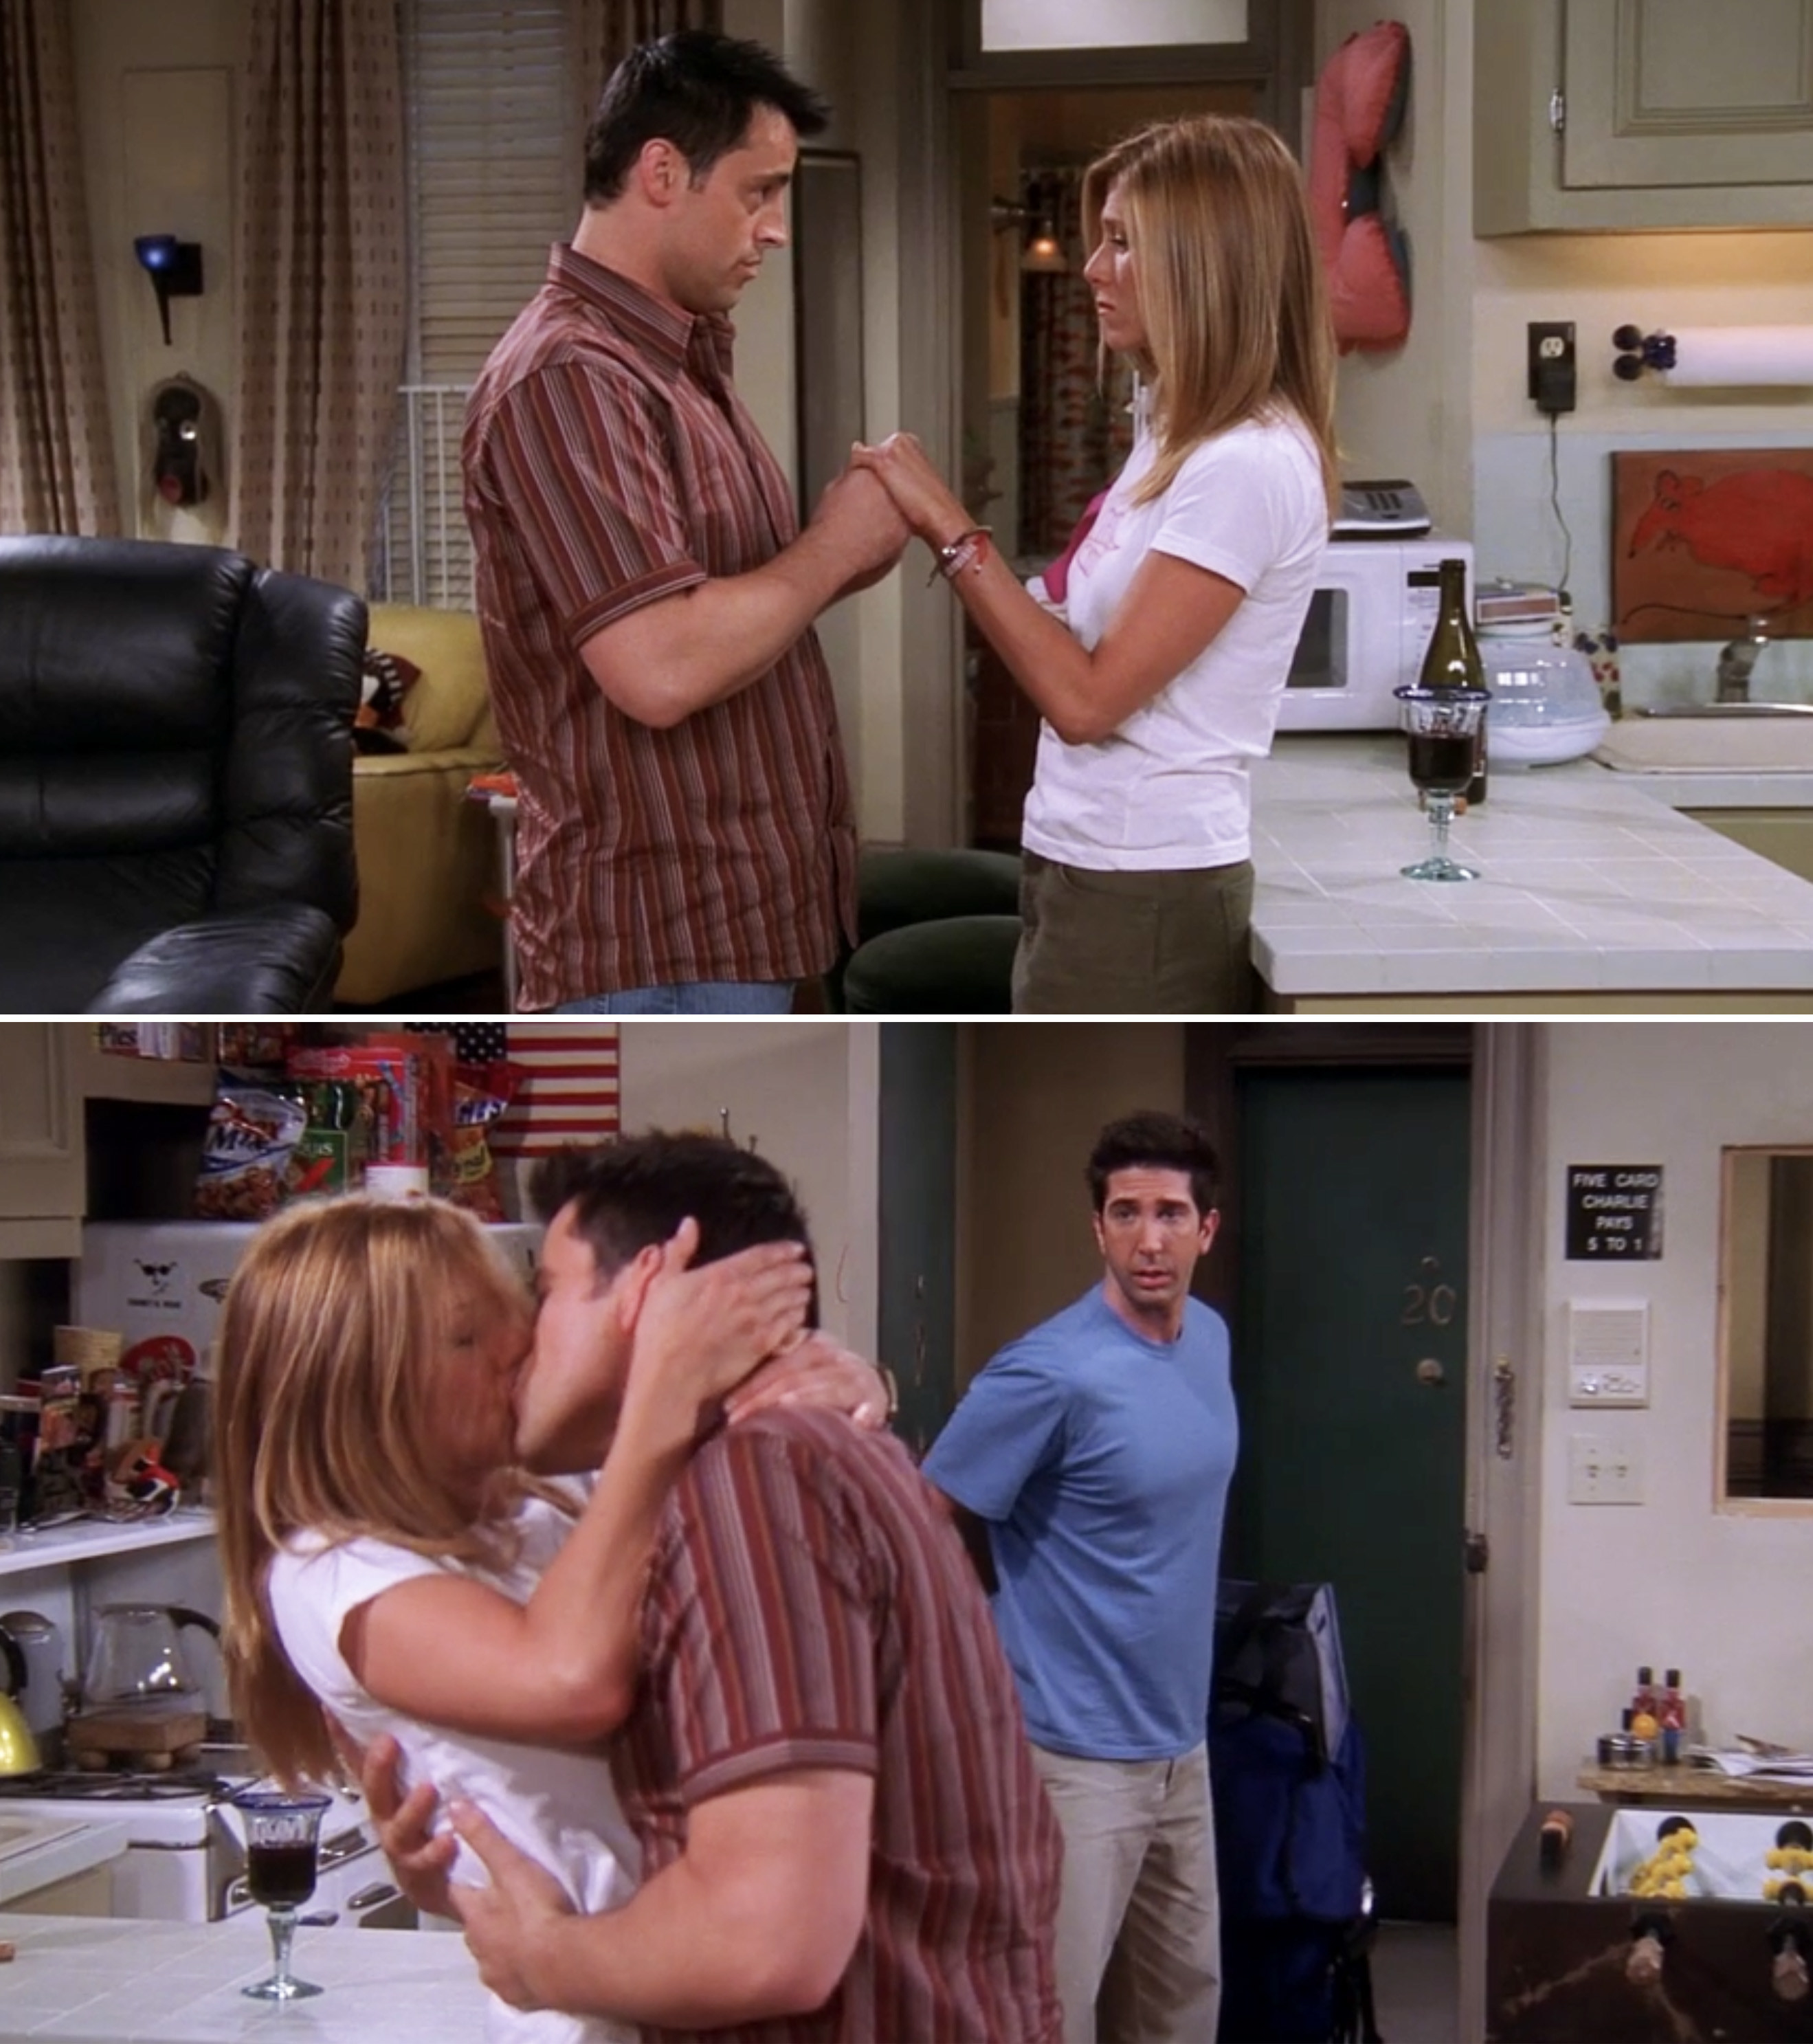 Rachel and Joey kissing in Joey's apartment and Ross walking in